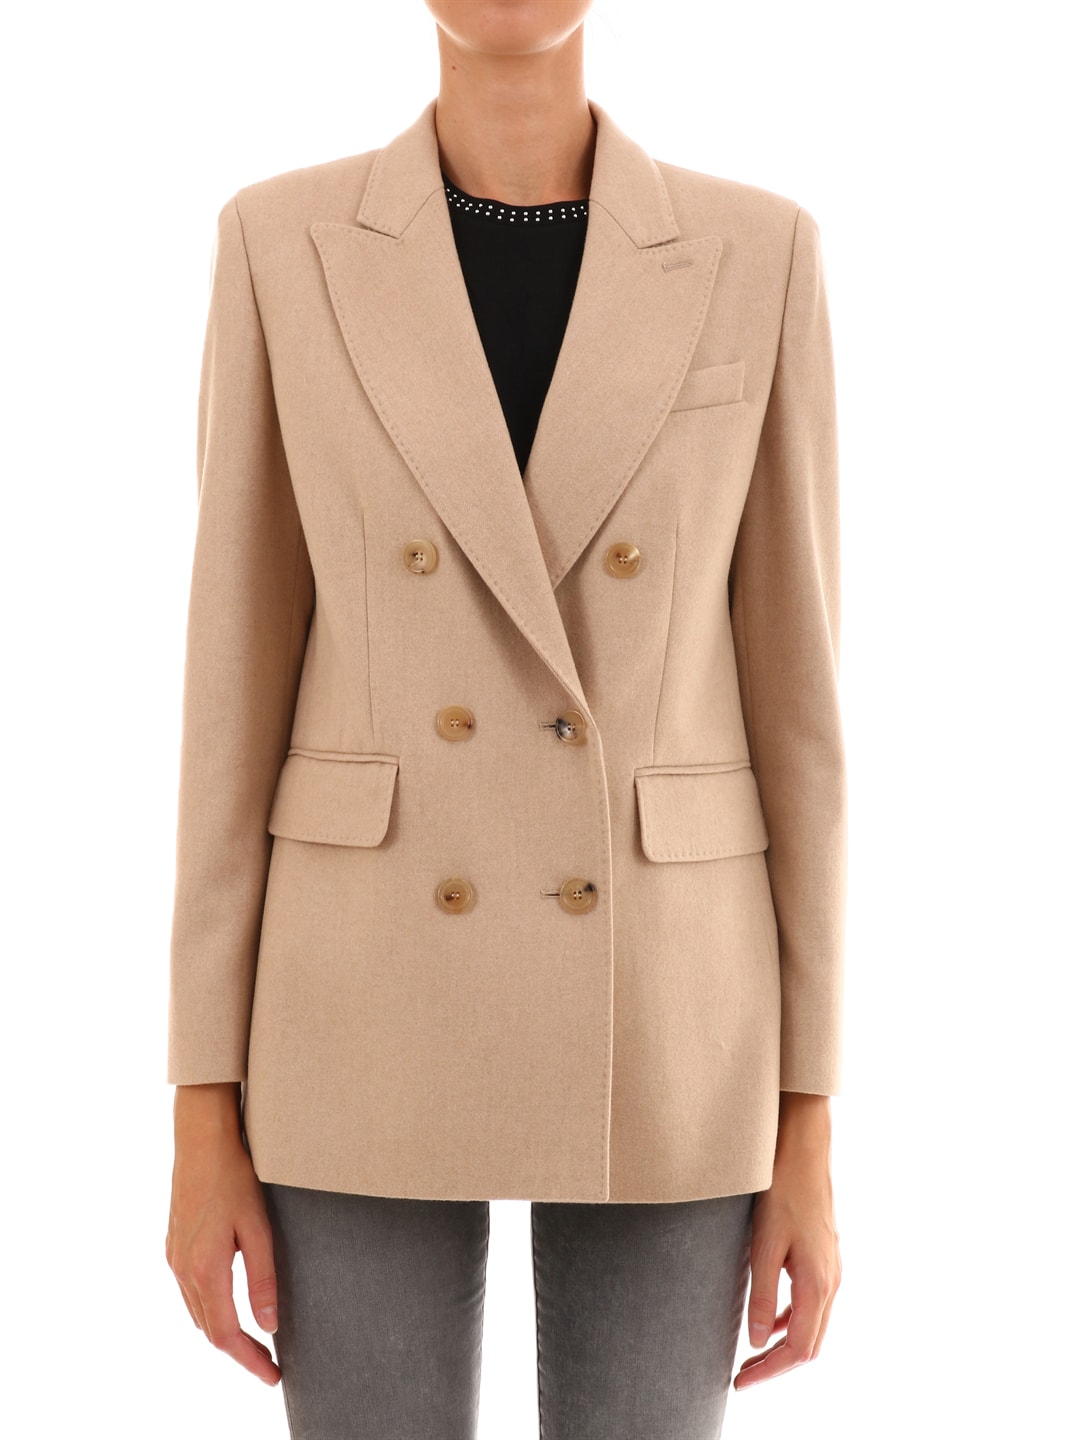 Max Mara Blazer In Camel And Flannel